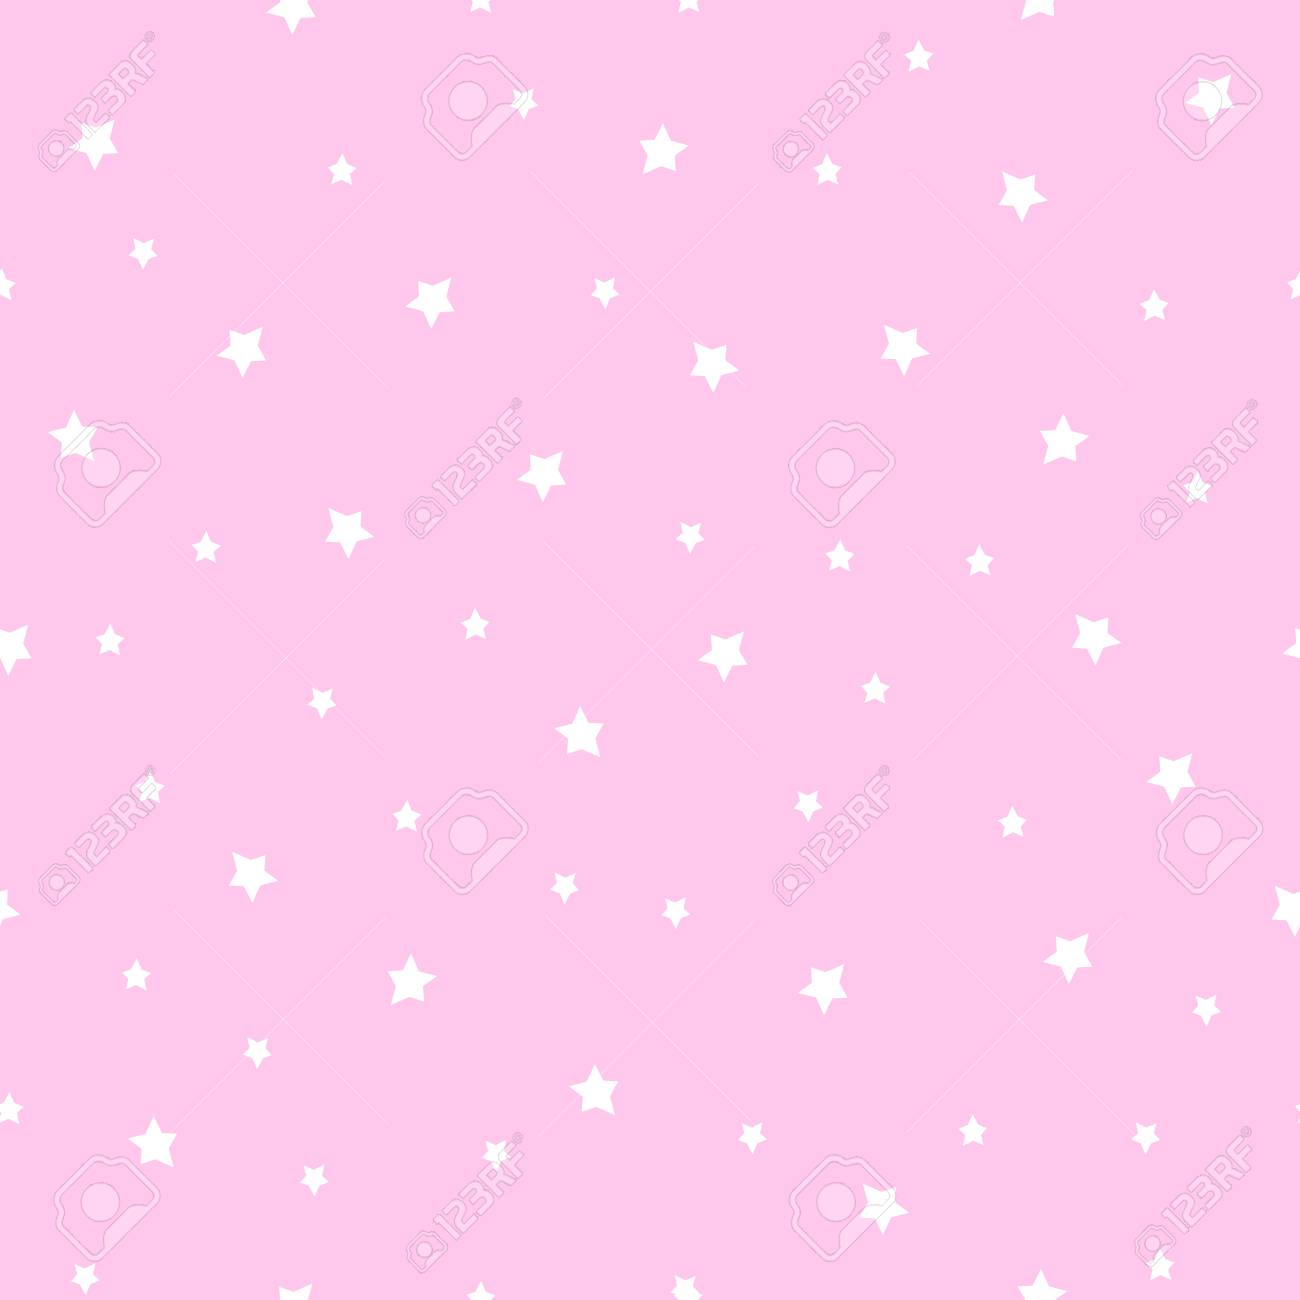 Seamless Stars Pattern On Baby Pink Background Cute Baby Shower Royalty Free Cliparts Vectors And Stock Illustration Image 61674714